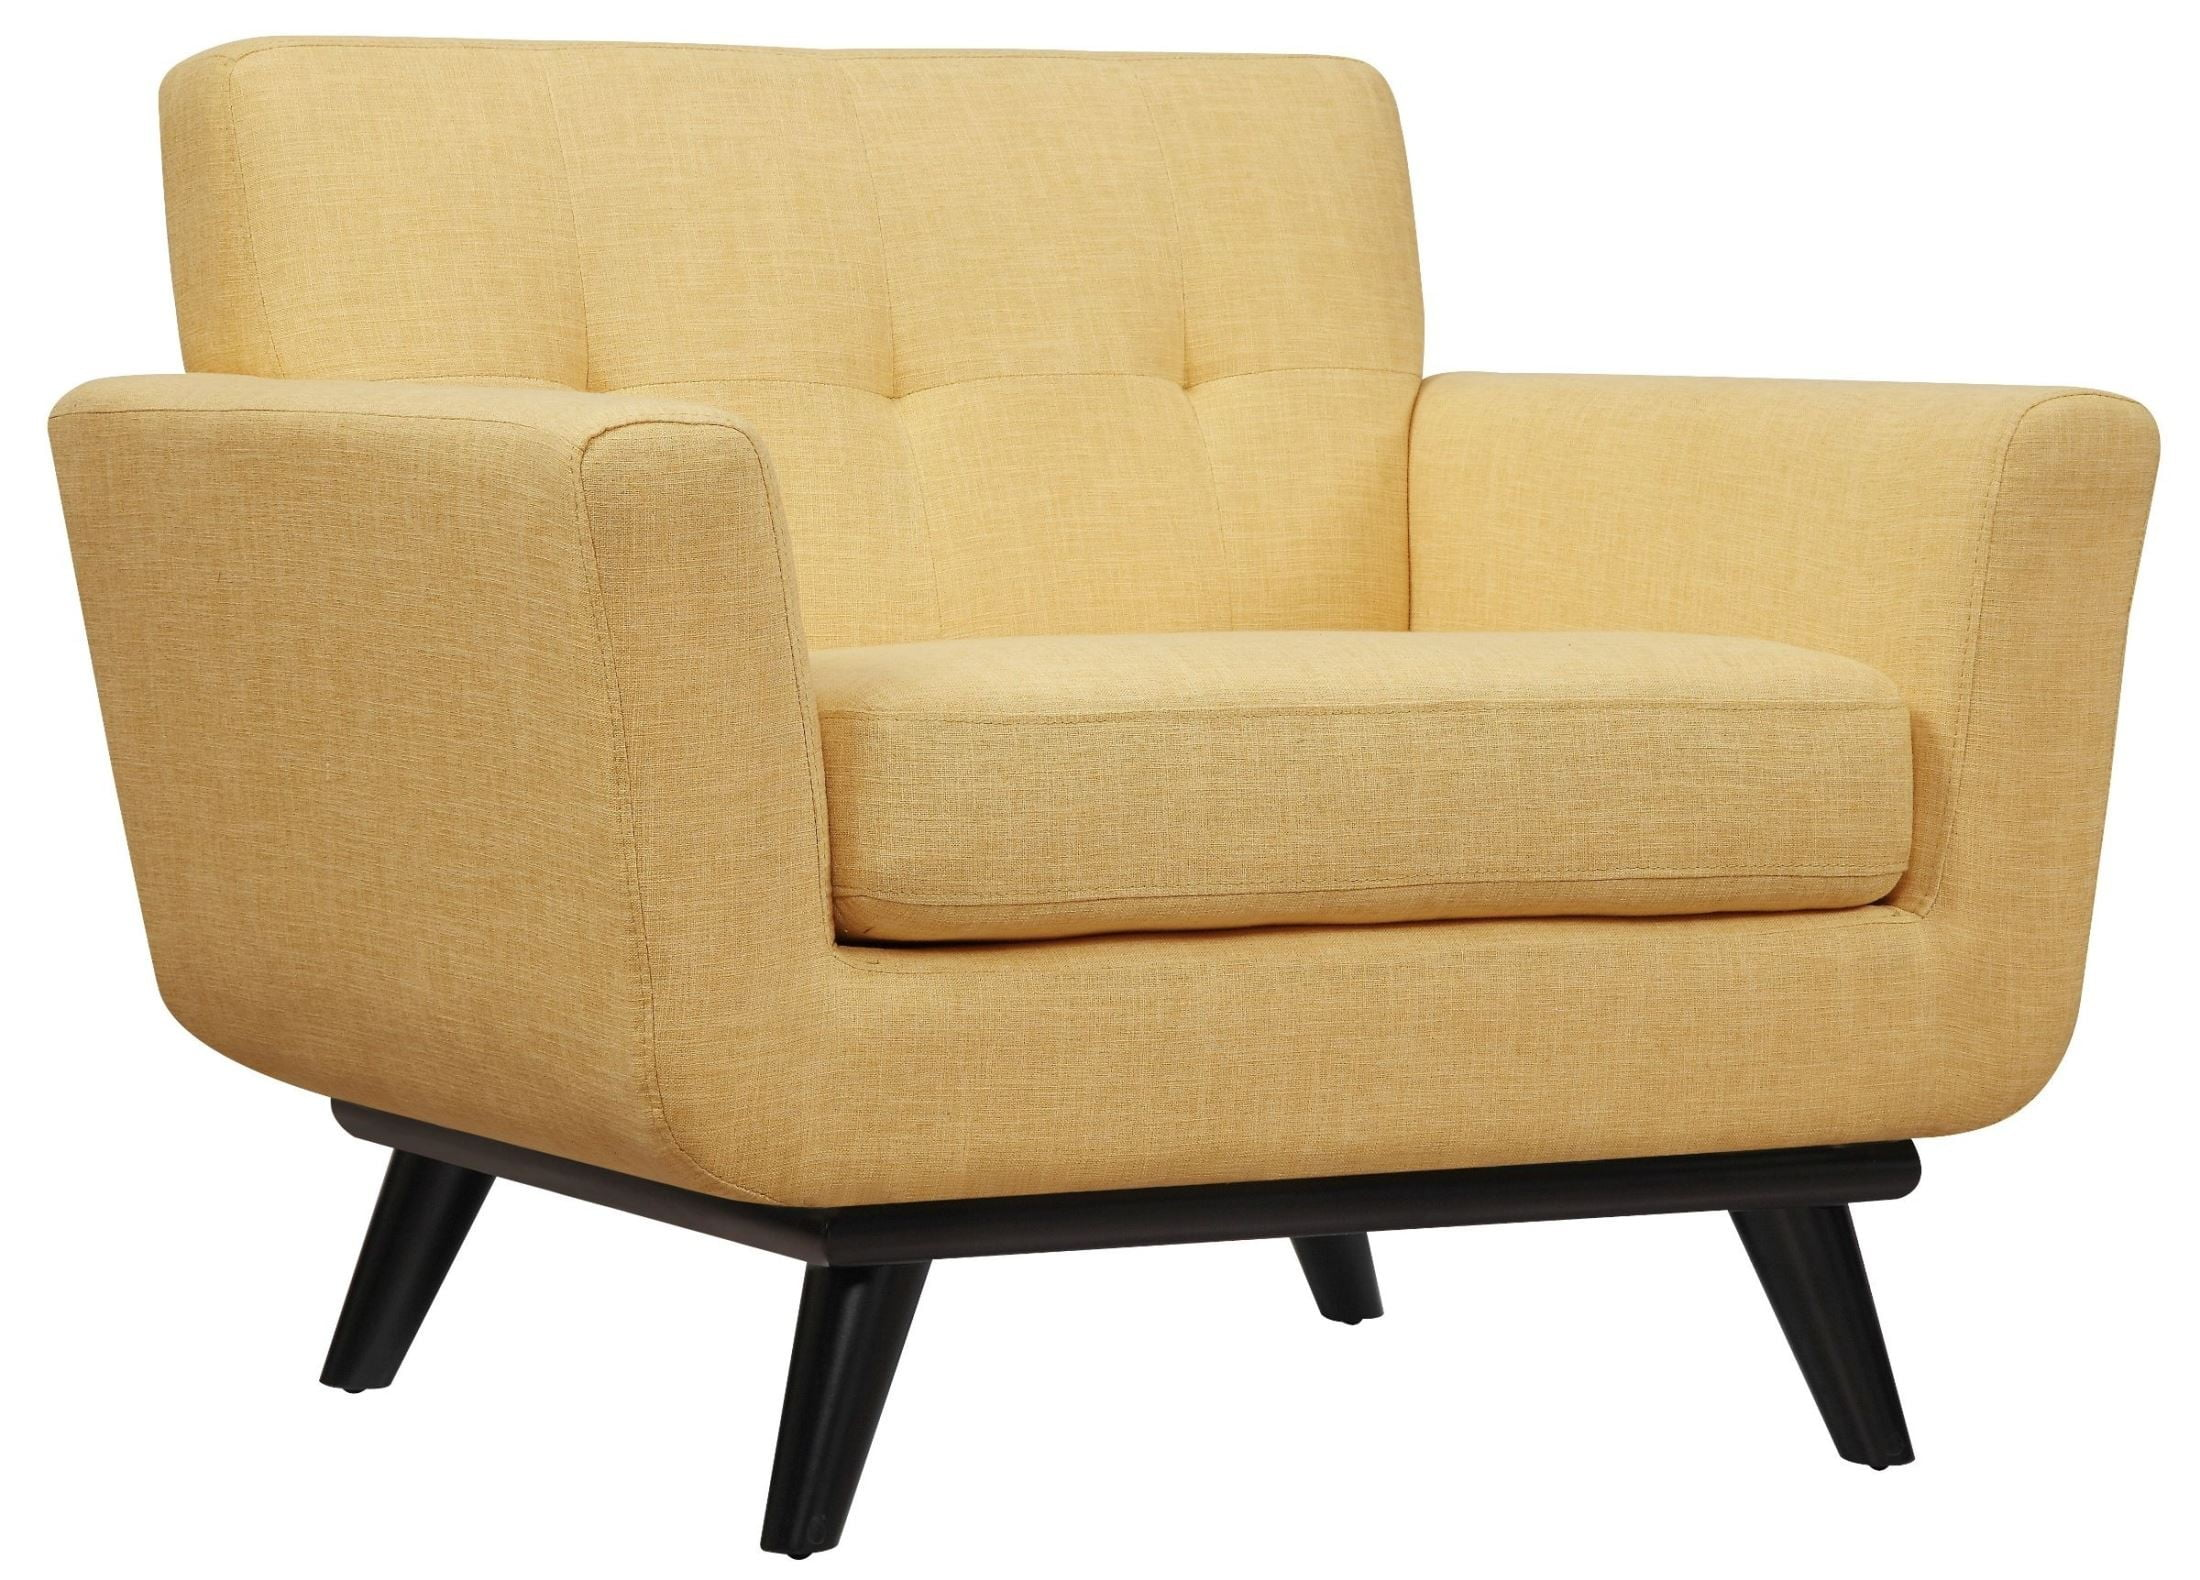 James Mustard Yellow Linen Chair From TOV (A55)